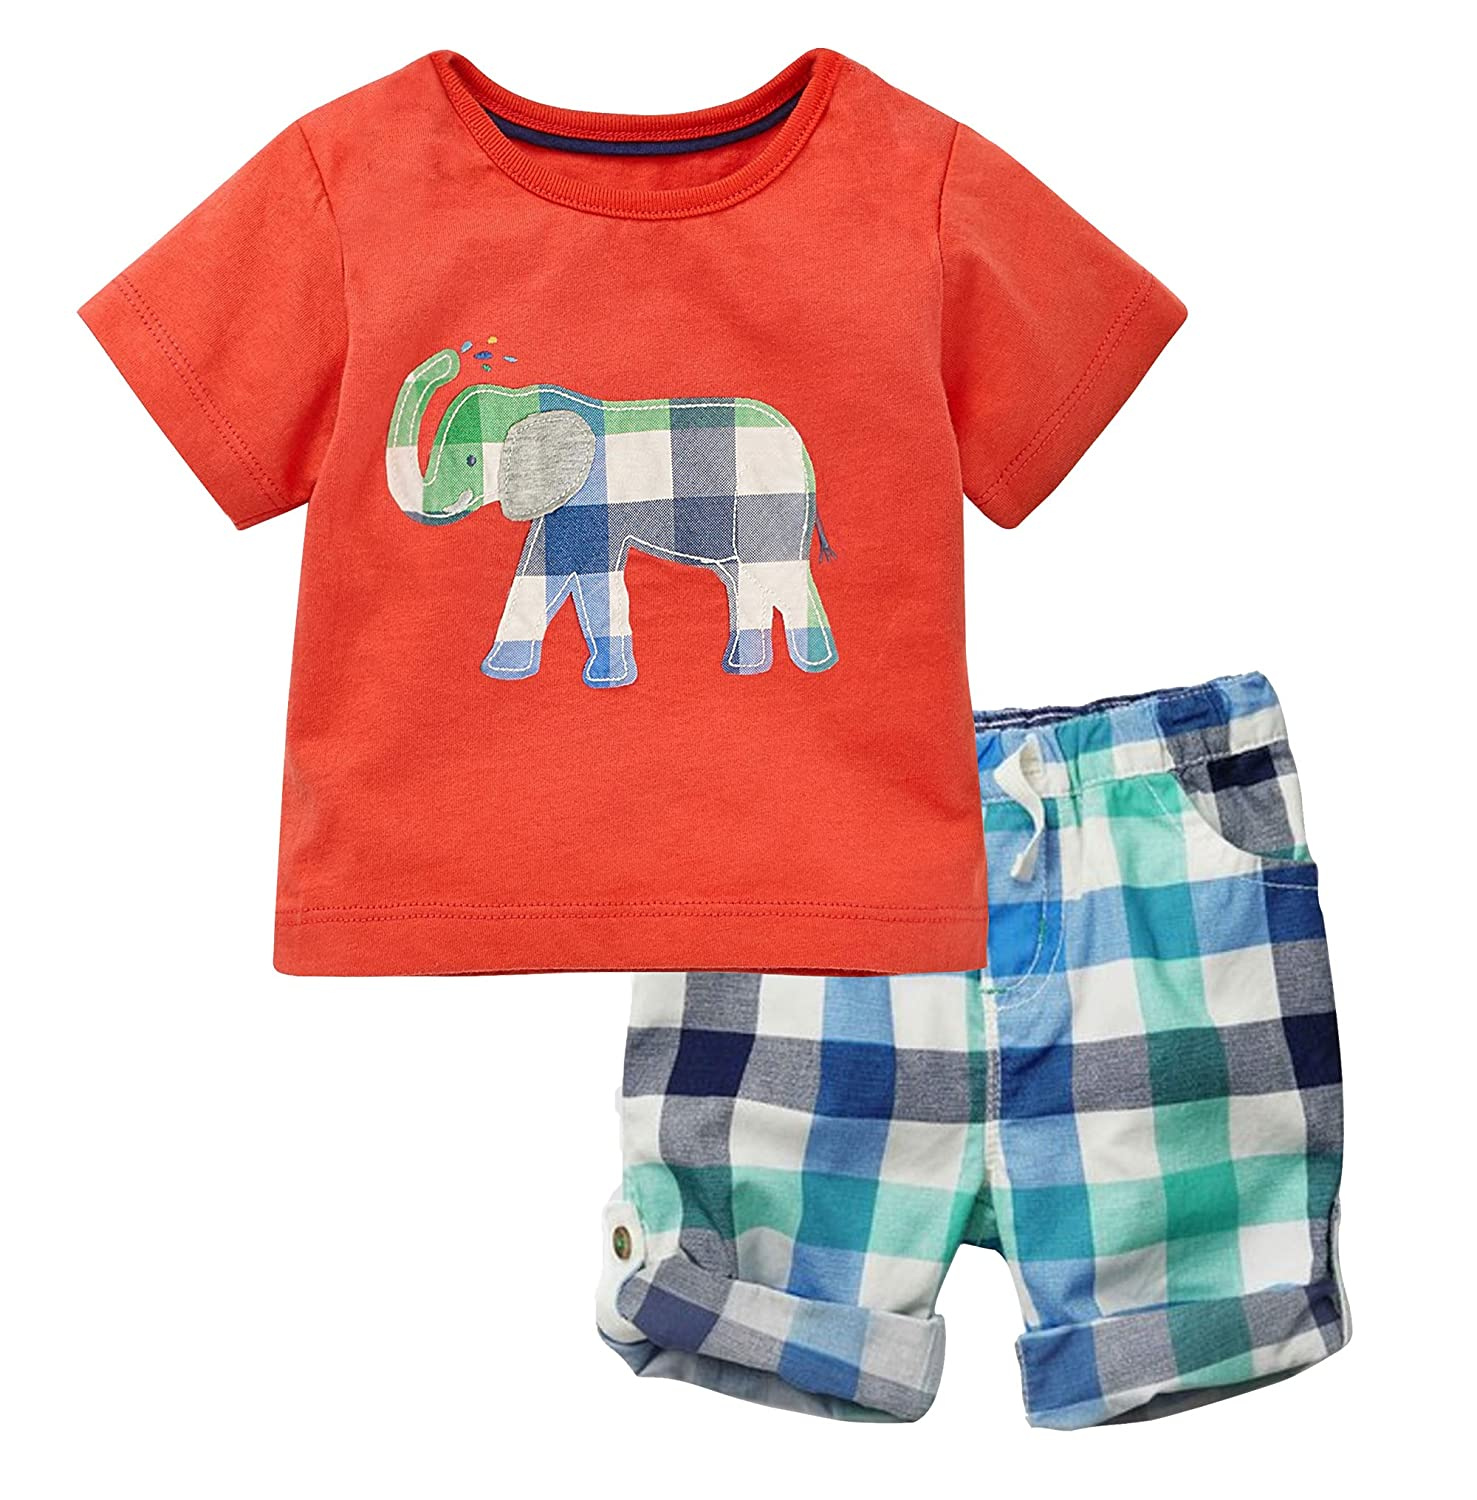 Jobakids Little Boys' Summer Cotton Short Sleeve Clothing Sets